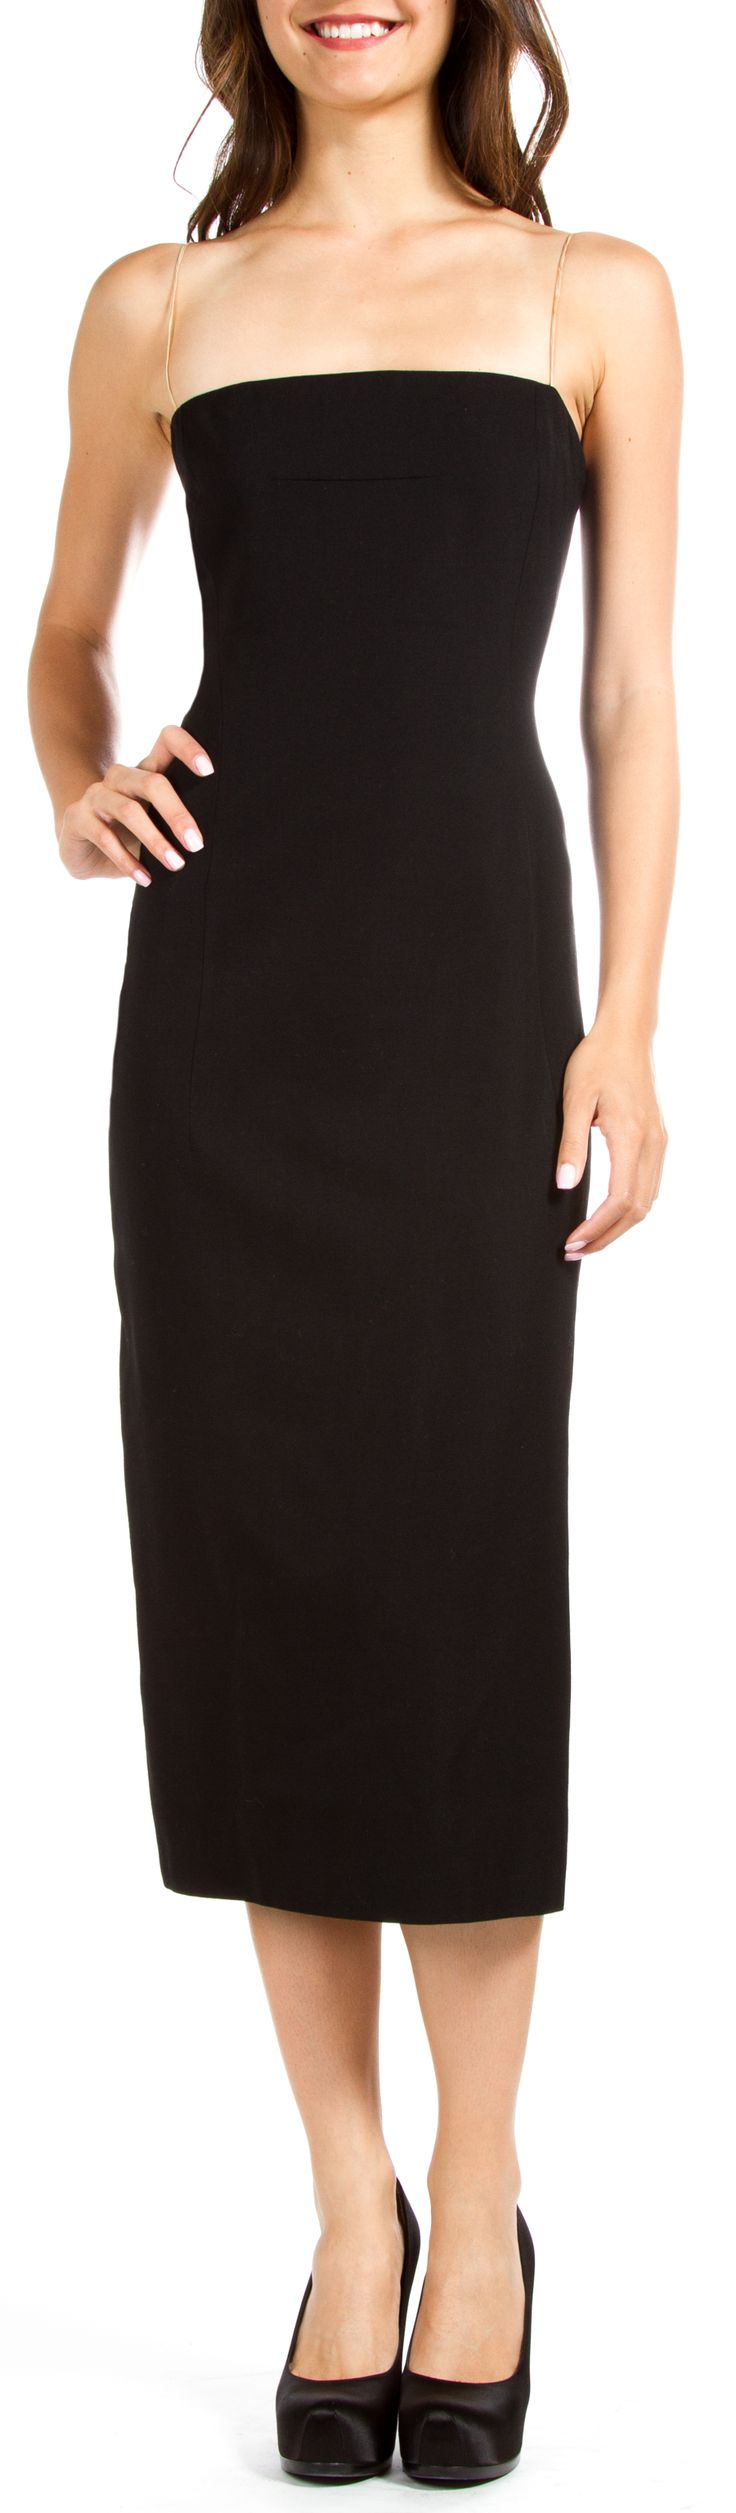 Gorgeous size 8 dress...LBD! Alessandro Dell' Acqua Dress @FollowShopHers